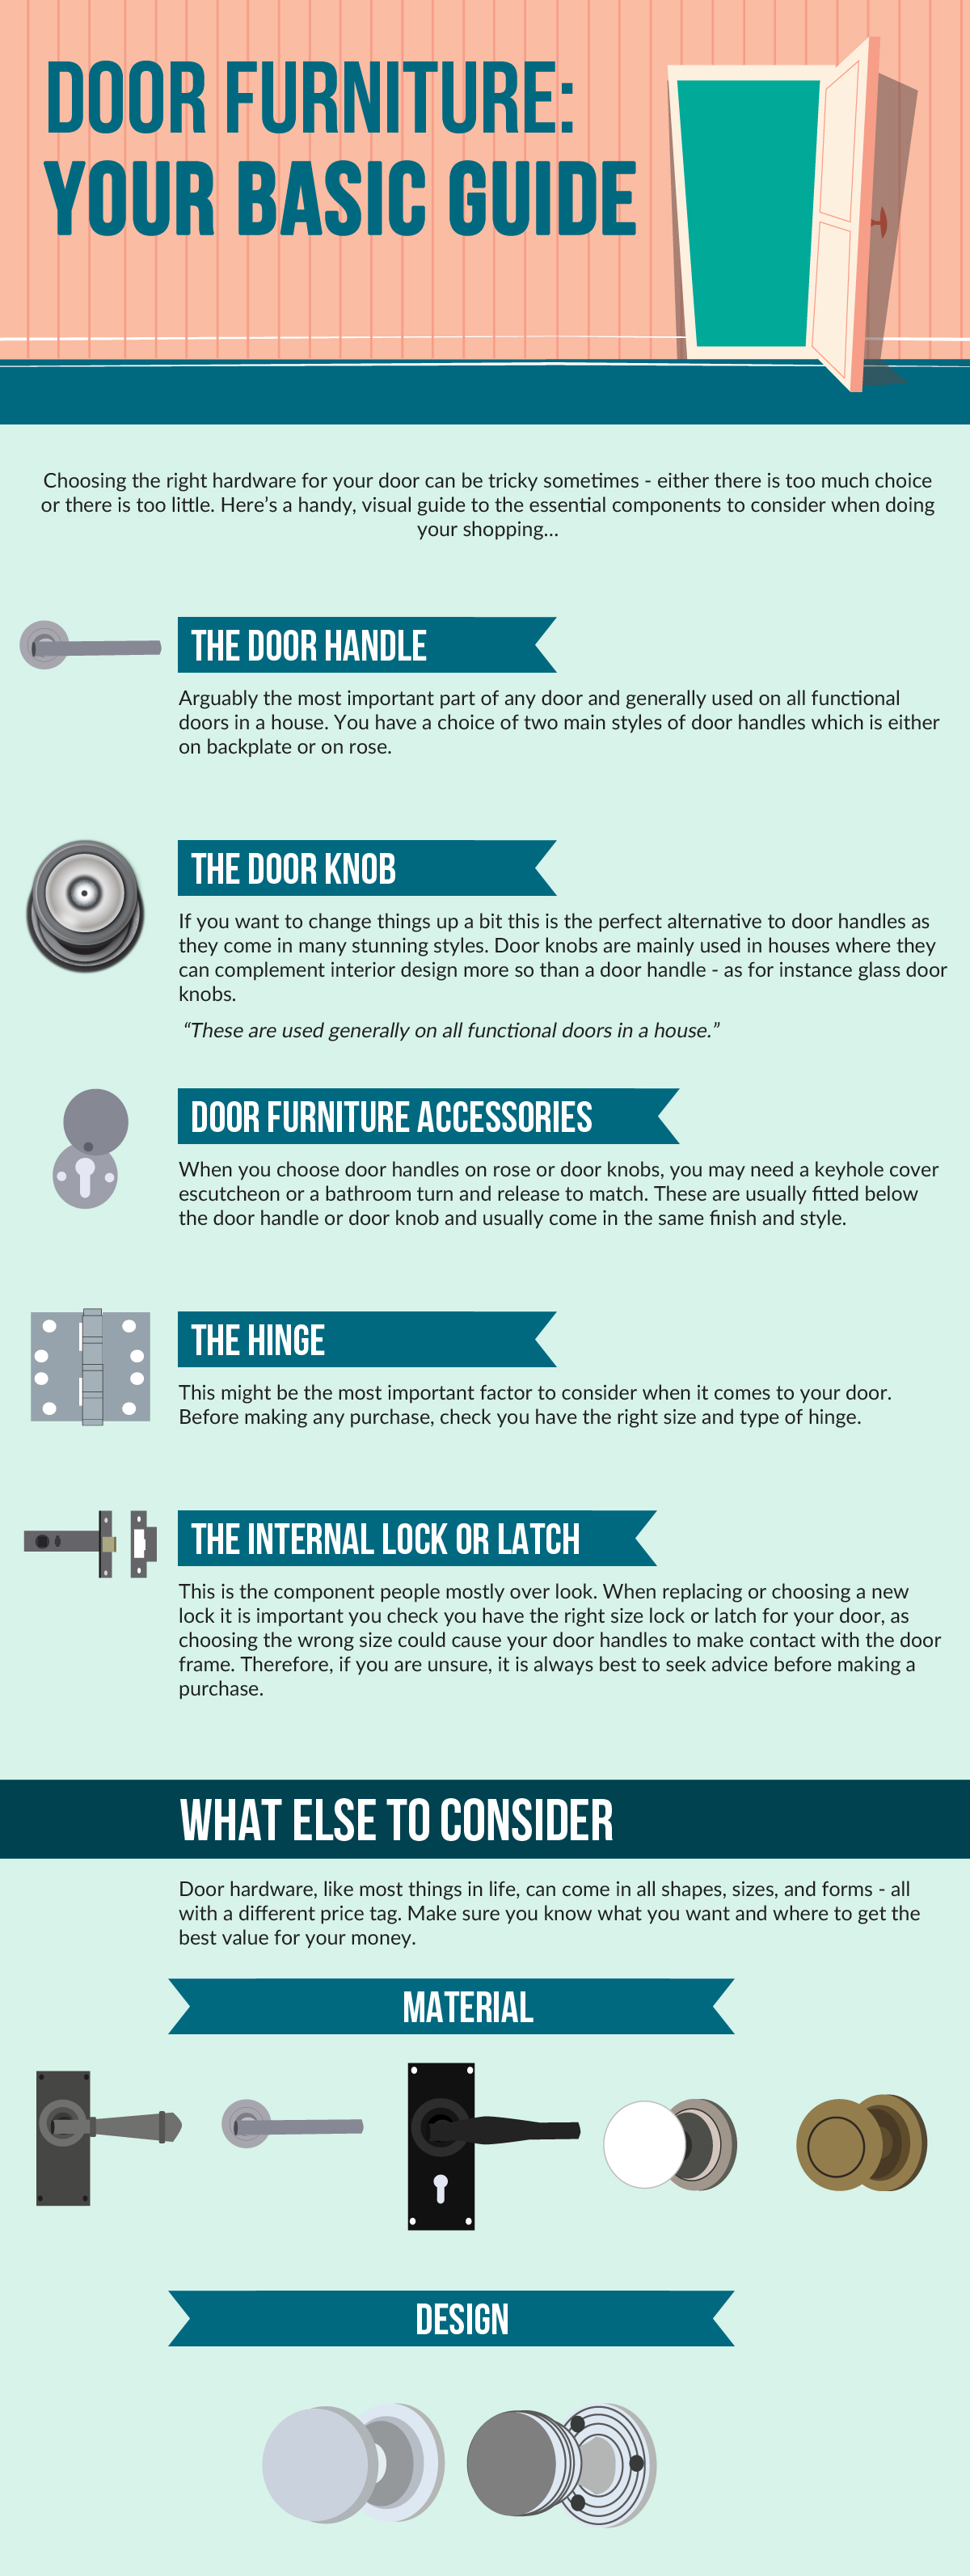 Infographic on door furniture basic guide by e-Hardware